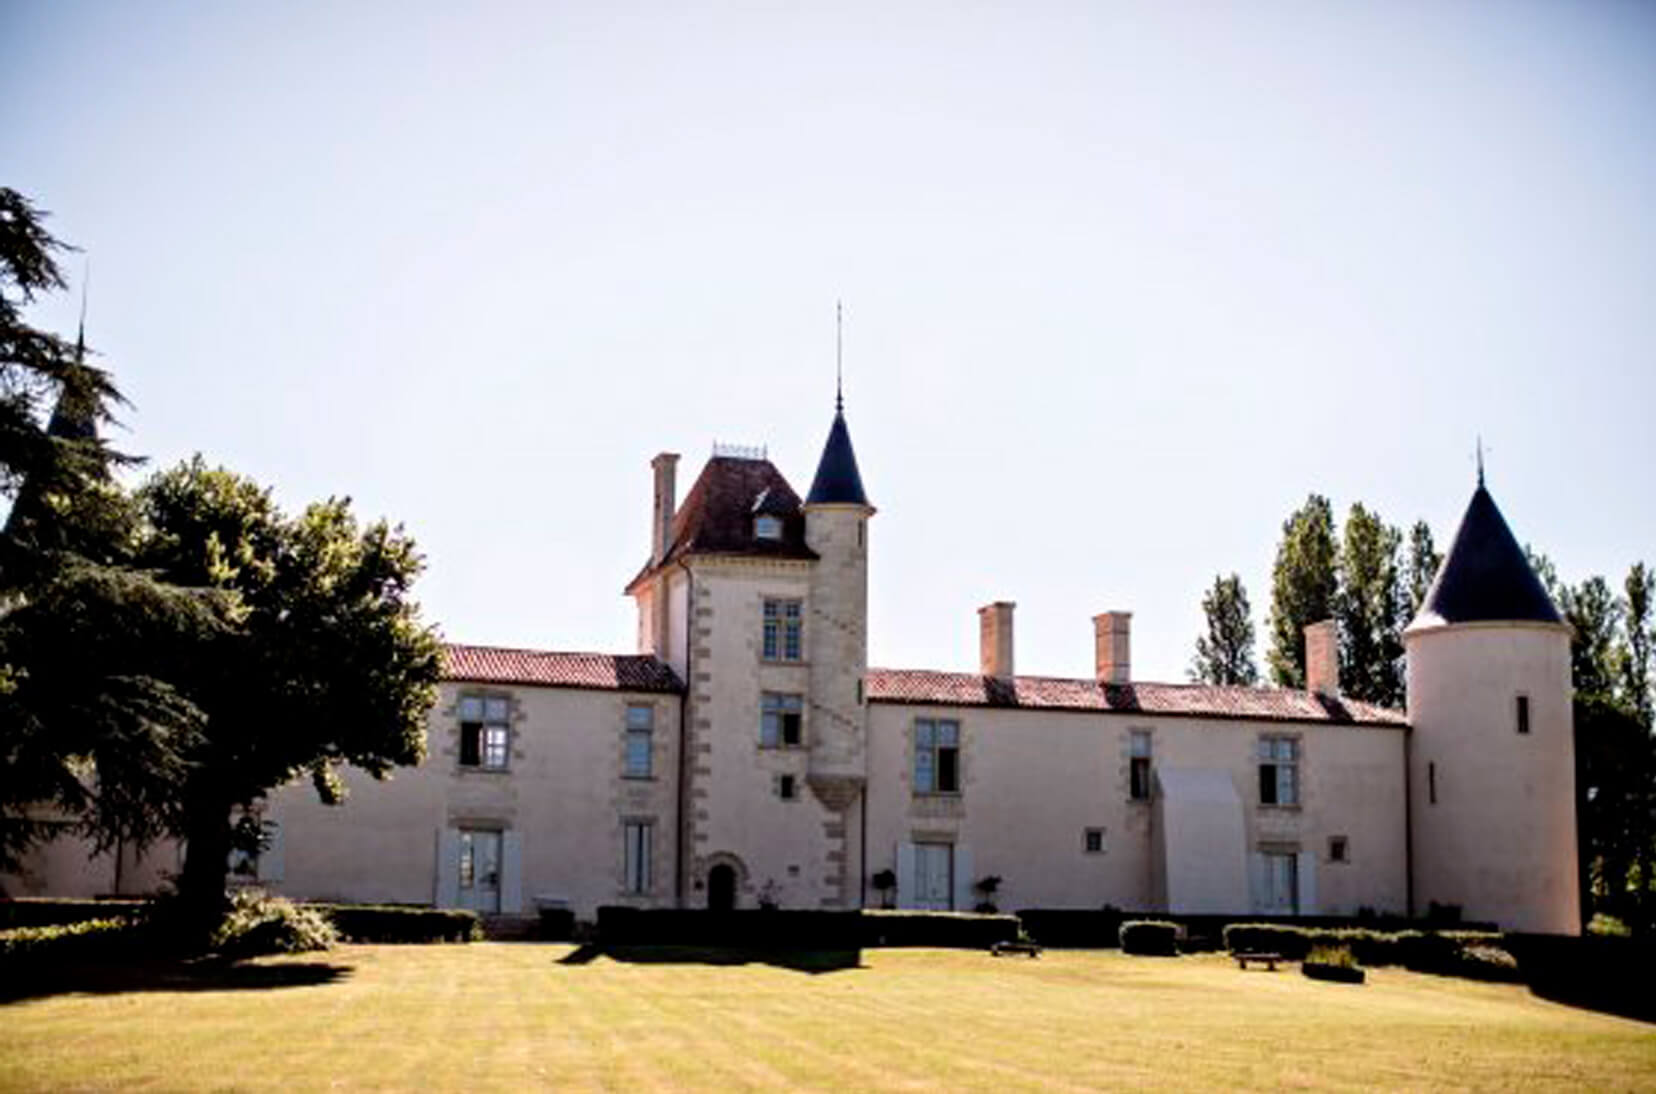 Welcome to Chateau Malrome